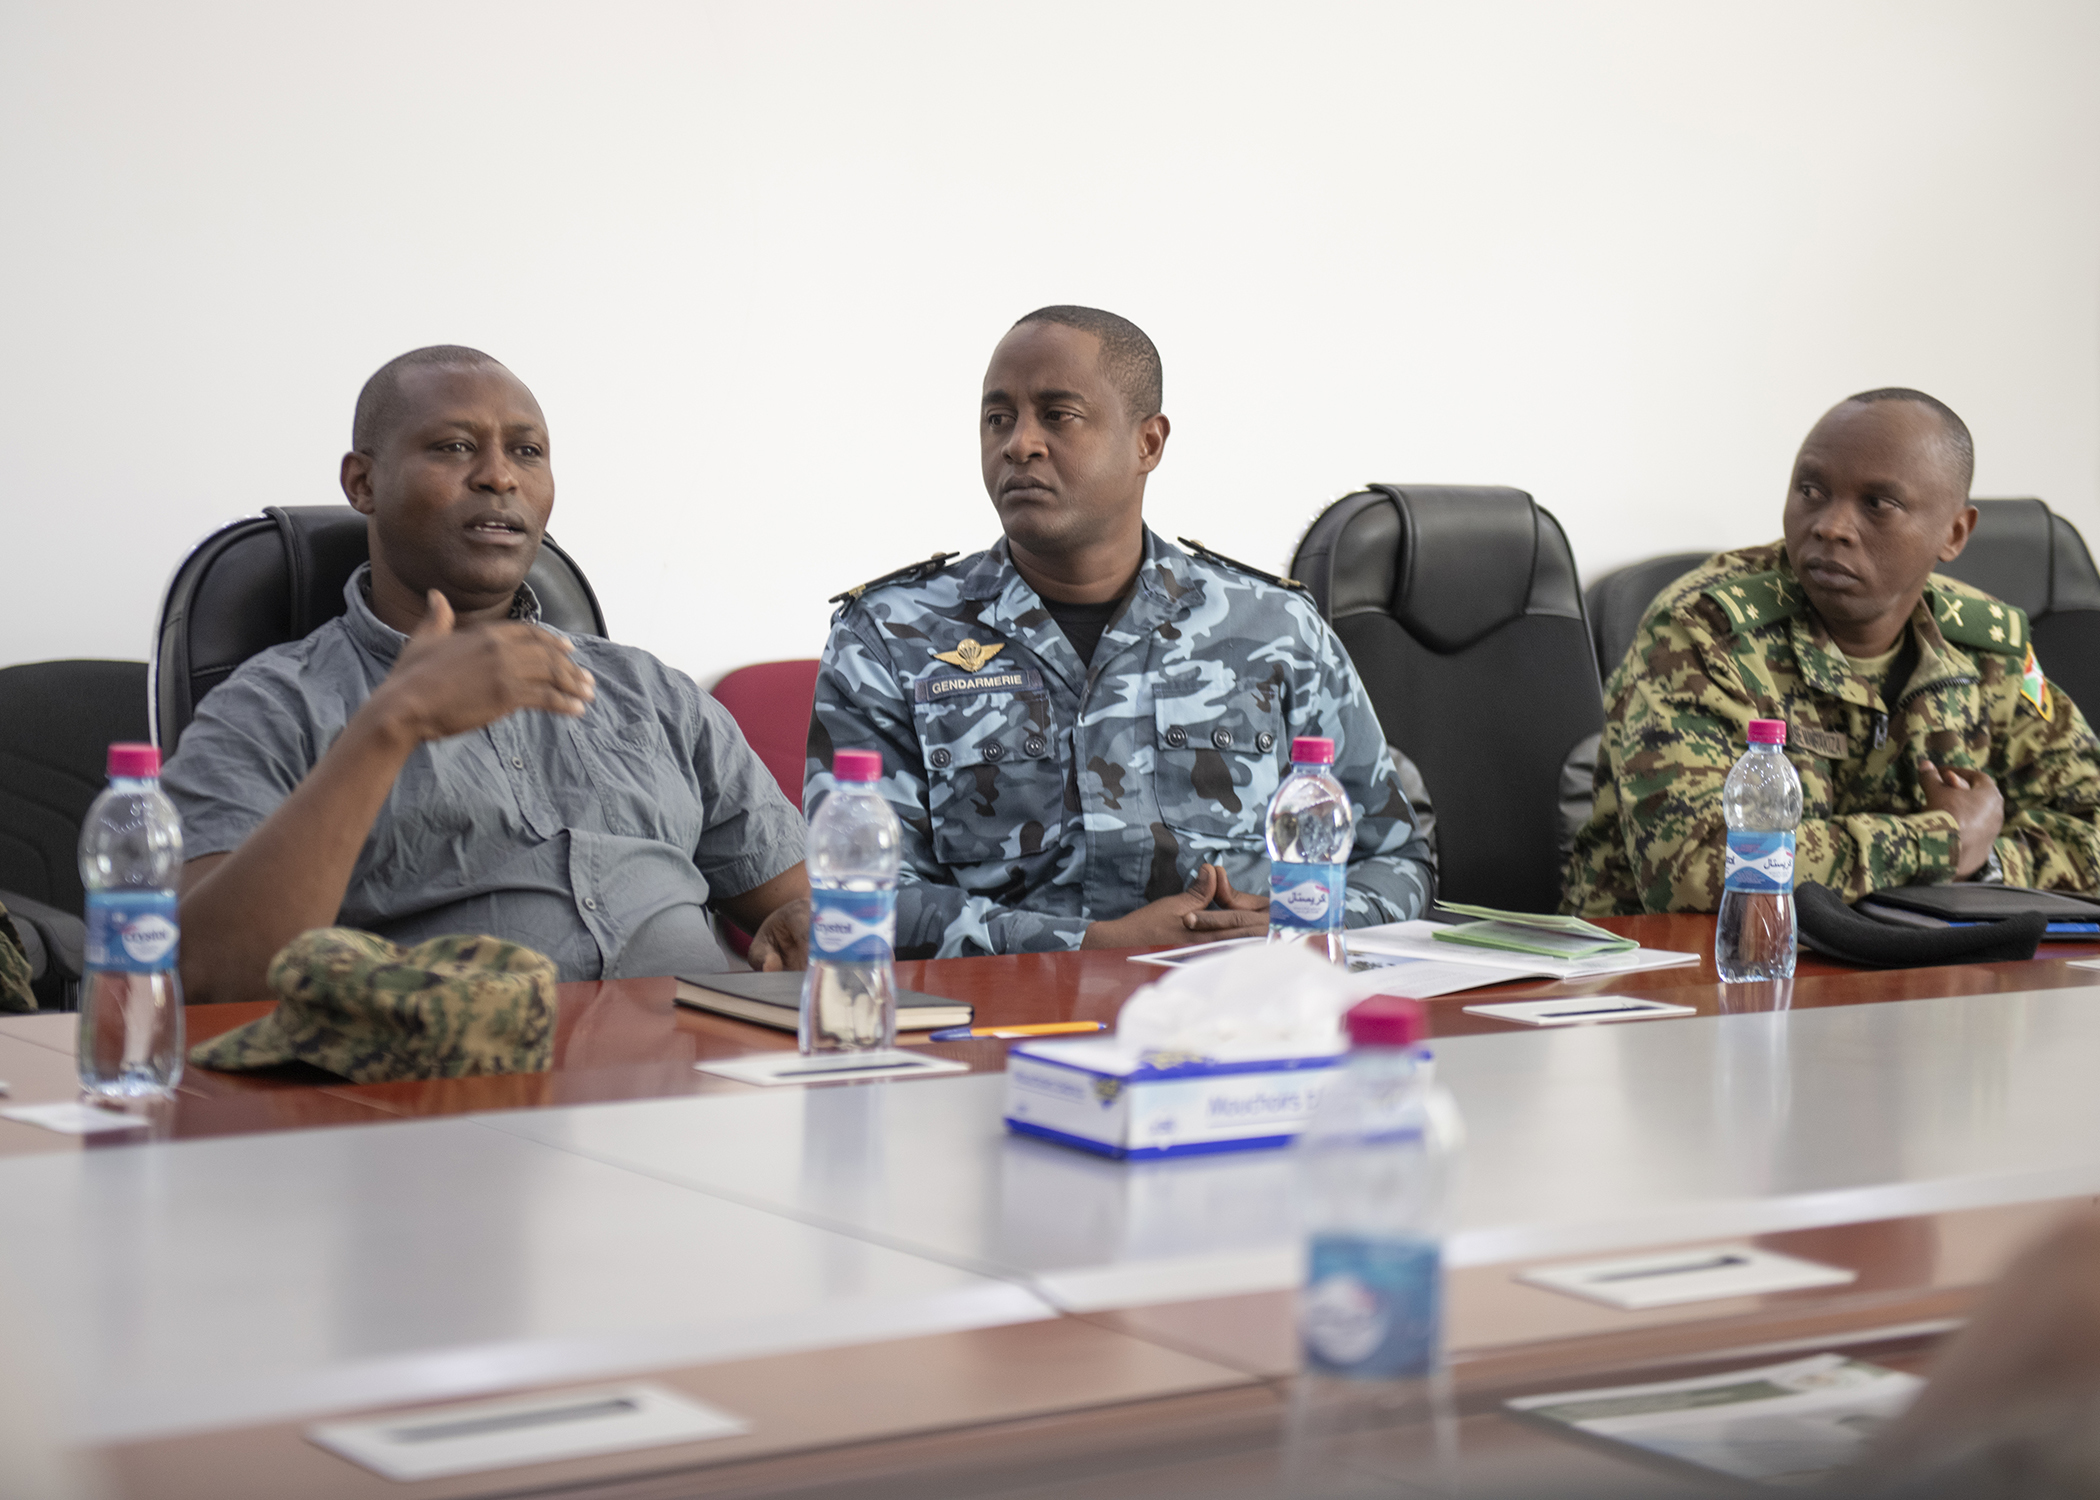 Dr. Simon Nyambura, director, Intergovernmental Authority on Development Center of Excellence for Preventing and Countering Violence Extremism, speaks during the first-ever formal meeting with foreign liaison officers and U.S. military members assigned to Combined Joint Task Force-Horn of Africa in Djibouti, Jan. 16, 2019. The purpose of the meeting was for both parties to familiarize themselves with each other's missions and goals through a short information exchange and set the stance for future meetings. (U.S. Air Force photo by Tech. Sgt. Shawn Nickel)